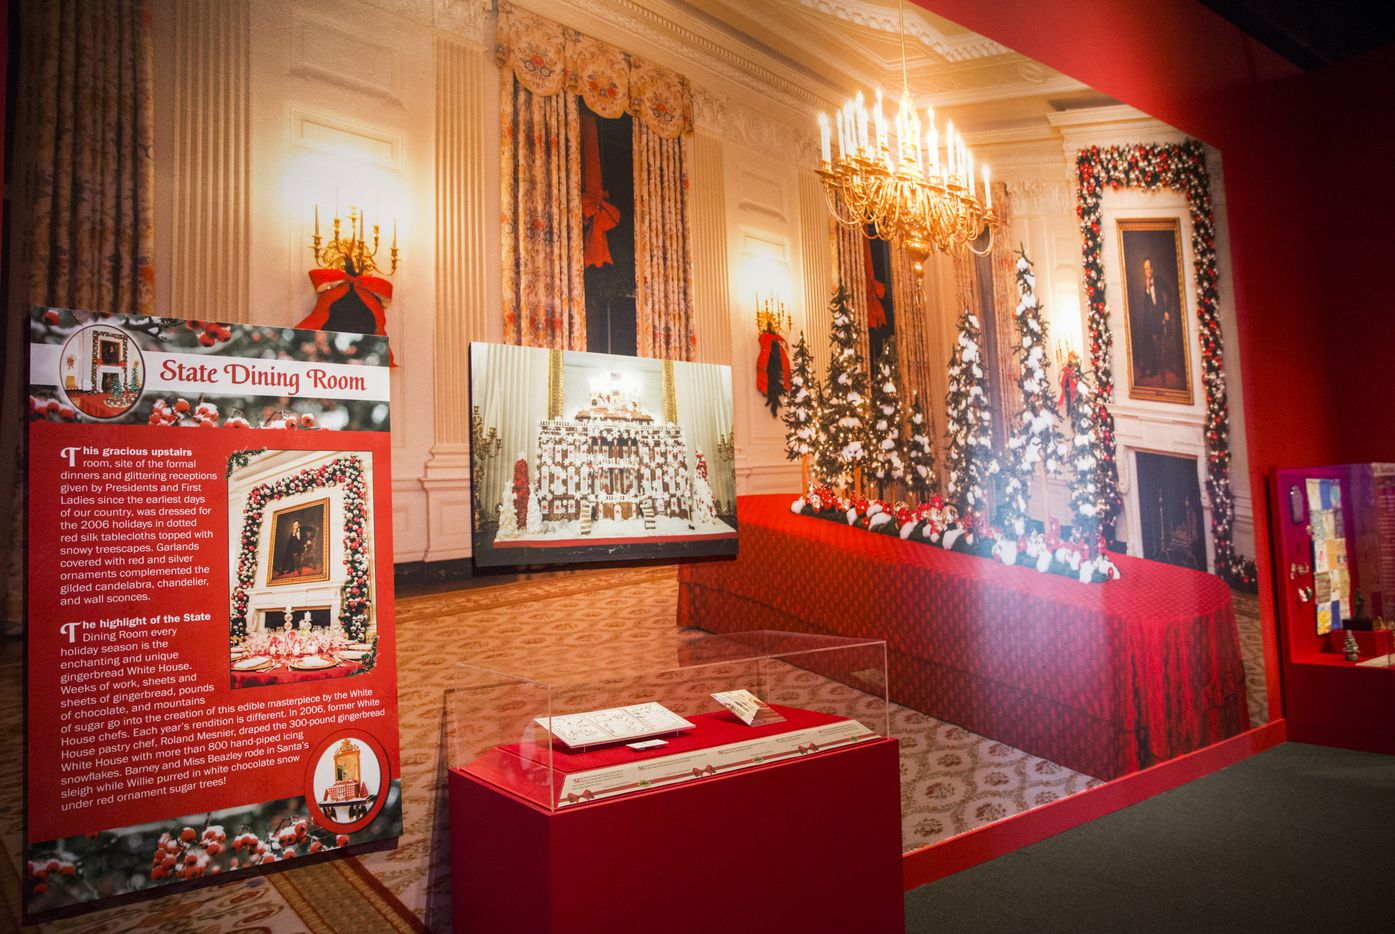 Photos of the State Dining Room are displayed at a Christmas exhibit at The George W. Bush Presidential Center and Library on Thursday, November 15, 2018 on the SMU campus in Dallas. This year's theme is Deck the Halls and Welcome All: Christmas at the White House 2006. (Ashley Landis/The Dallas Morning News)